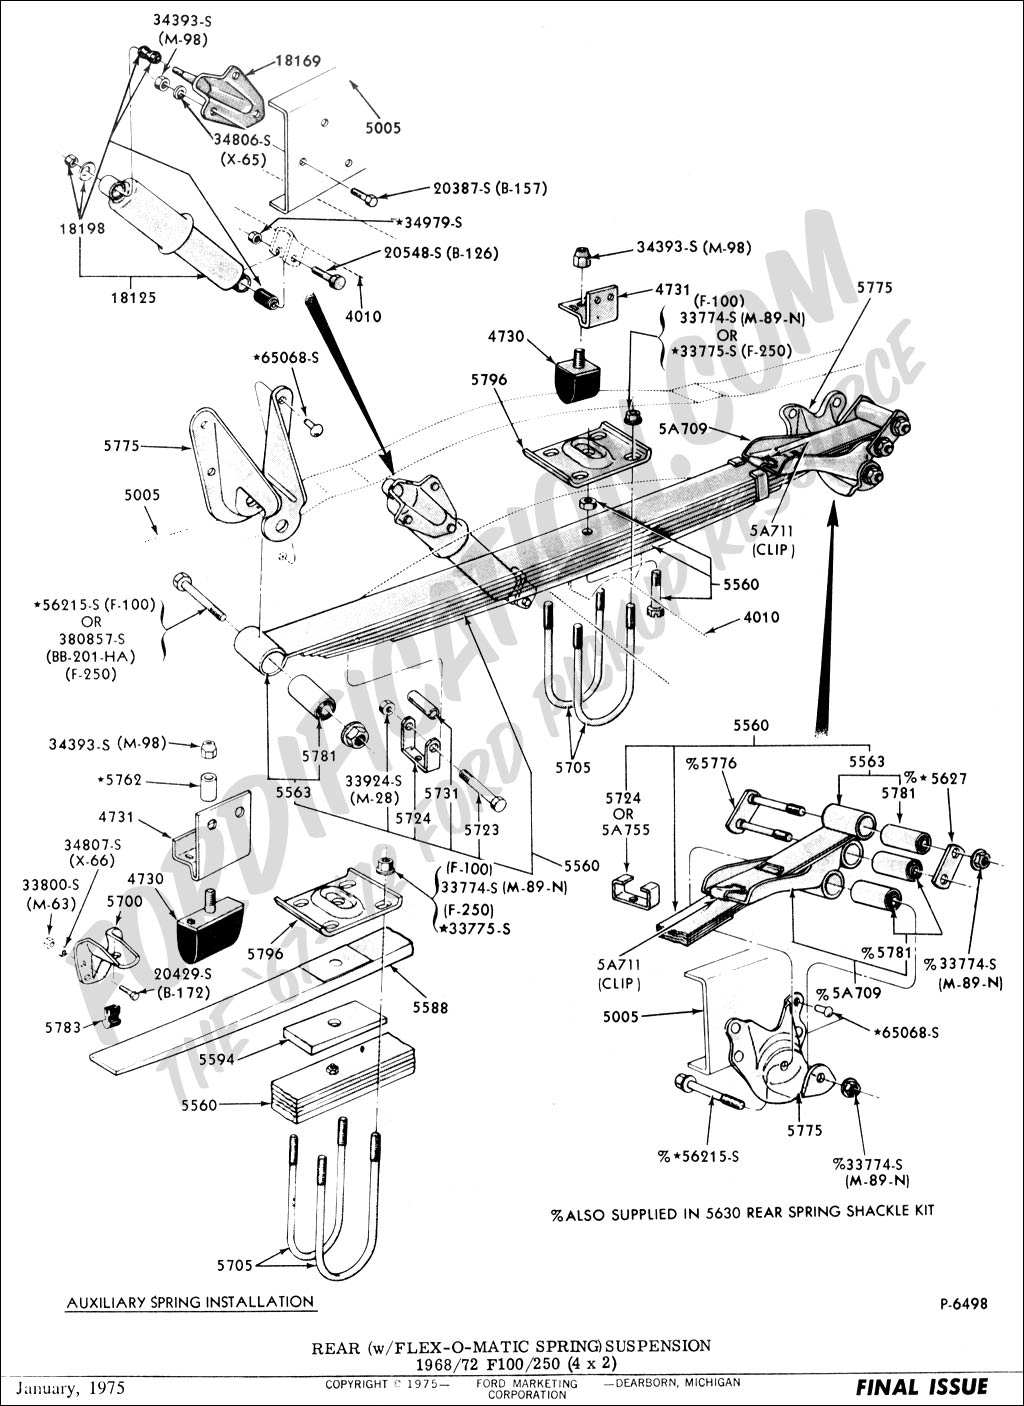 2011 Ford Flex Front Suspension Diagram Best Secret Wiring Steering Column Truck Technical Drawings And Schematics Section A 1979 2010